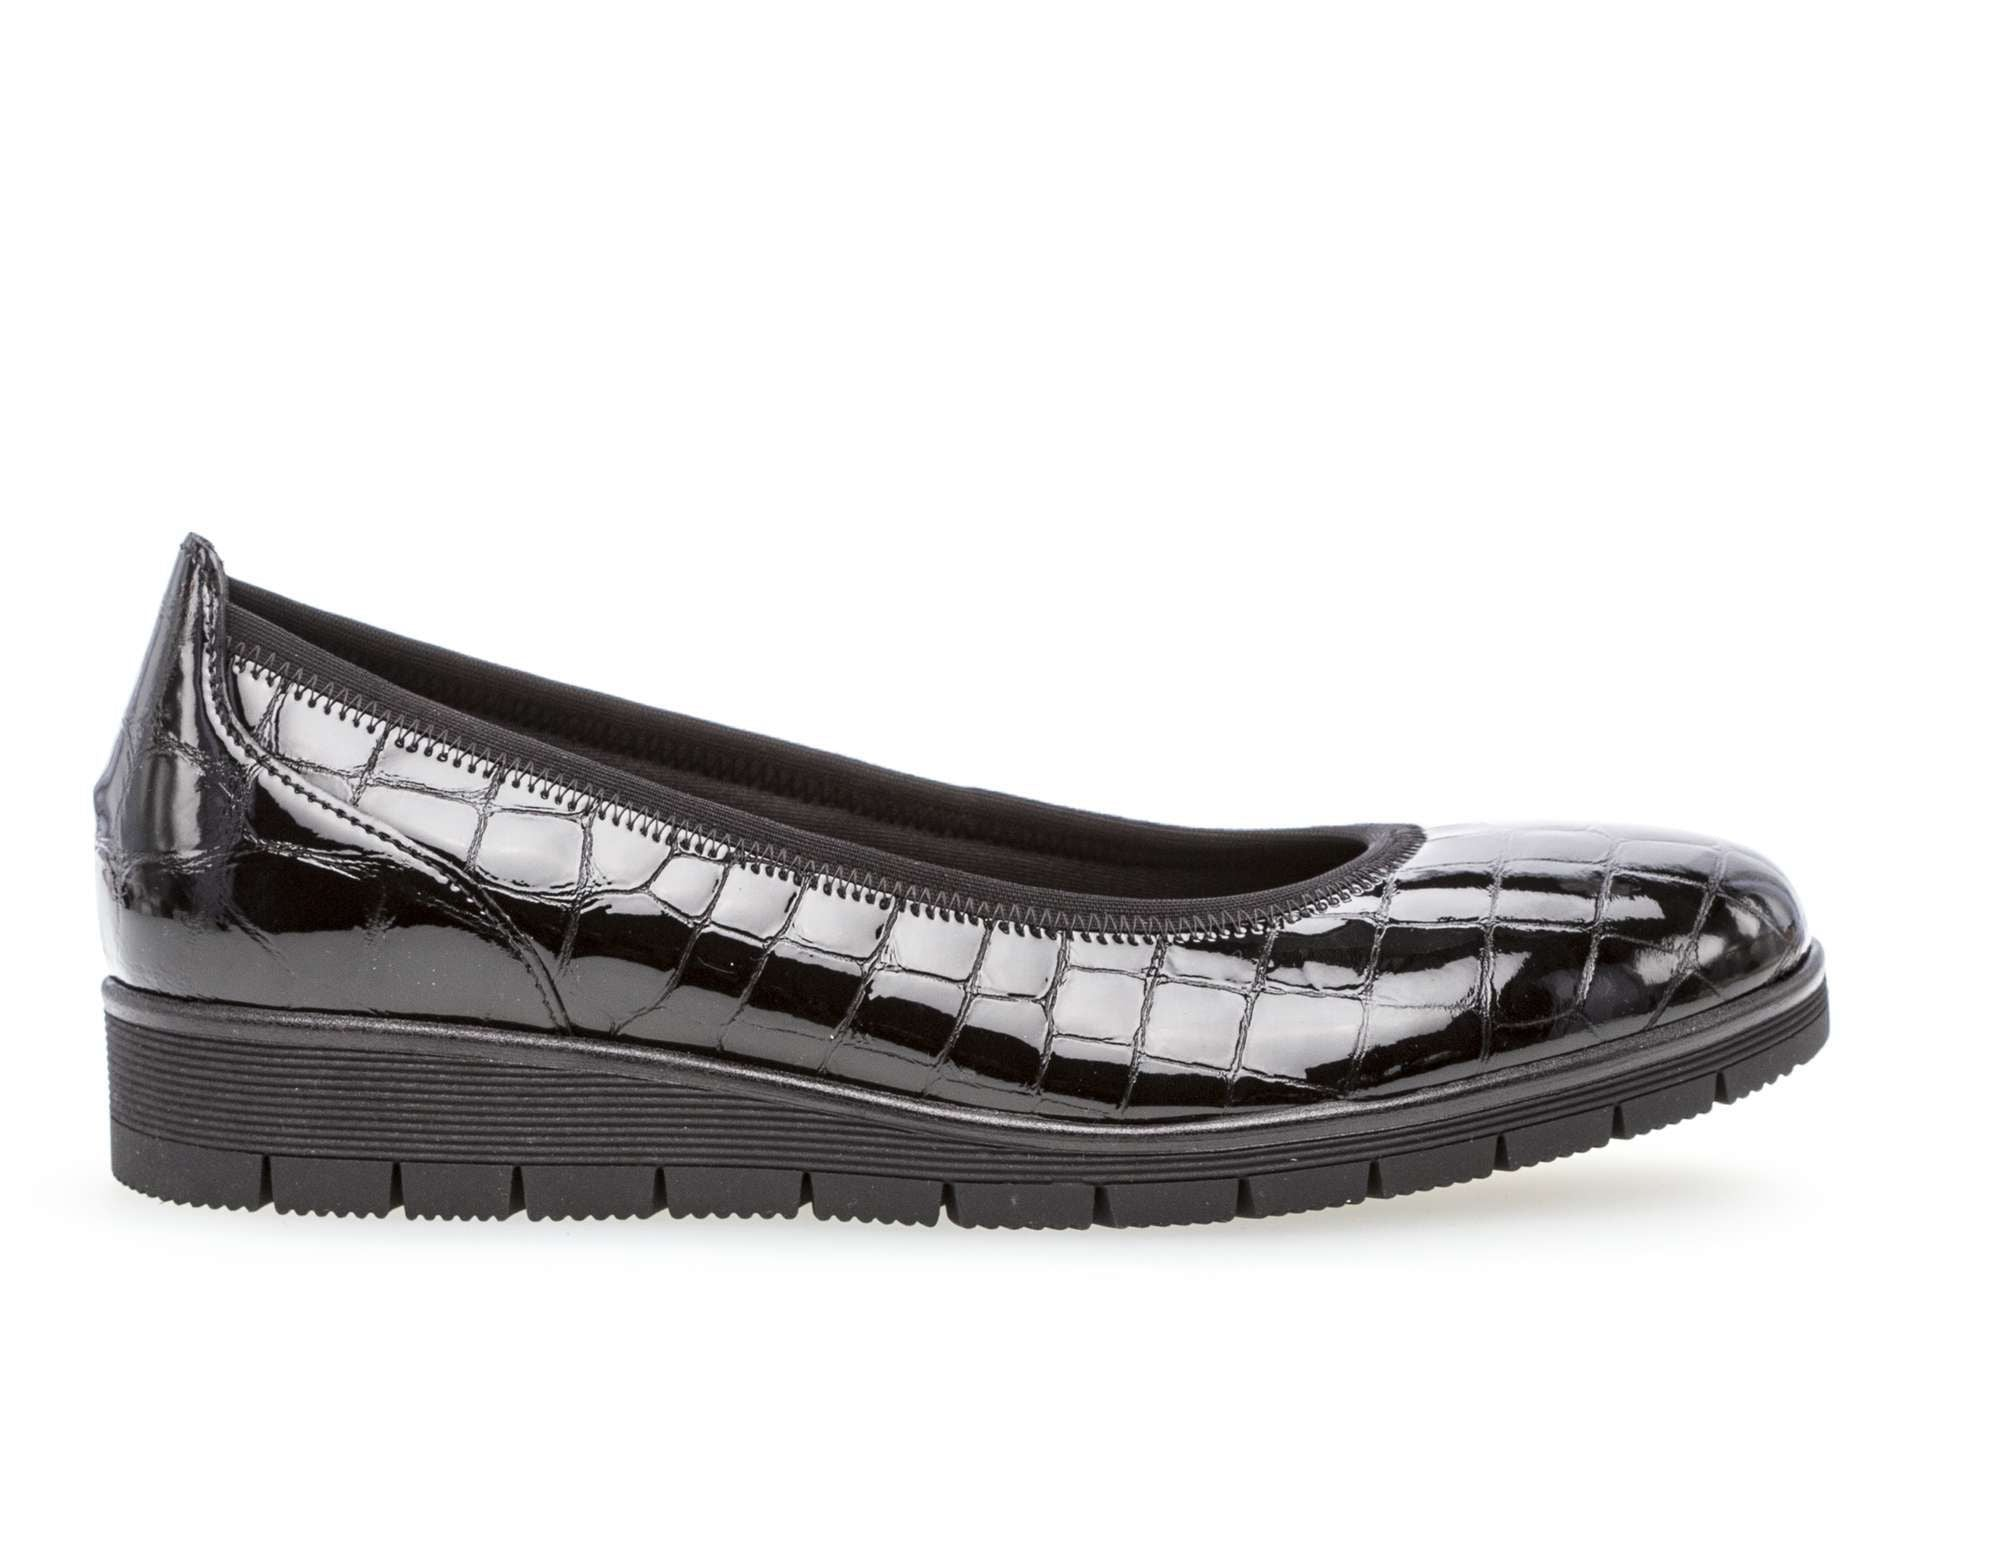 95340.87 - Ballerinas Reptile Leather Black